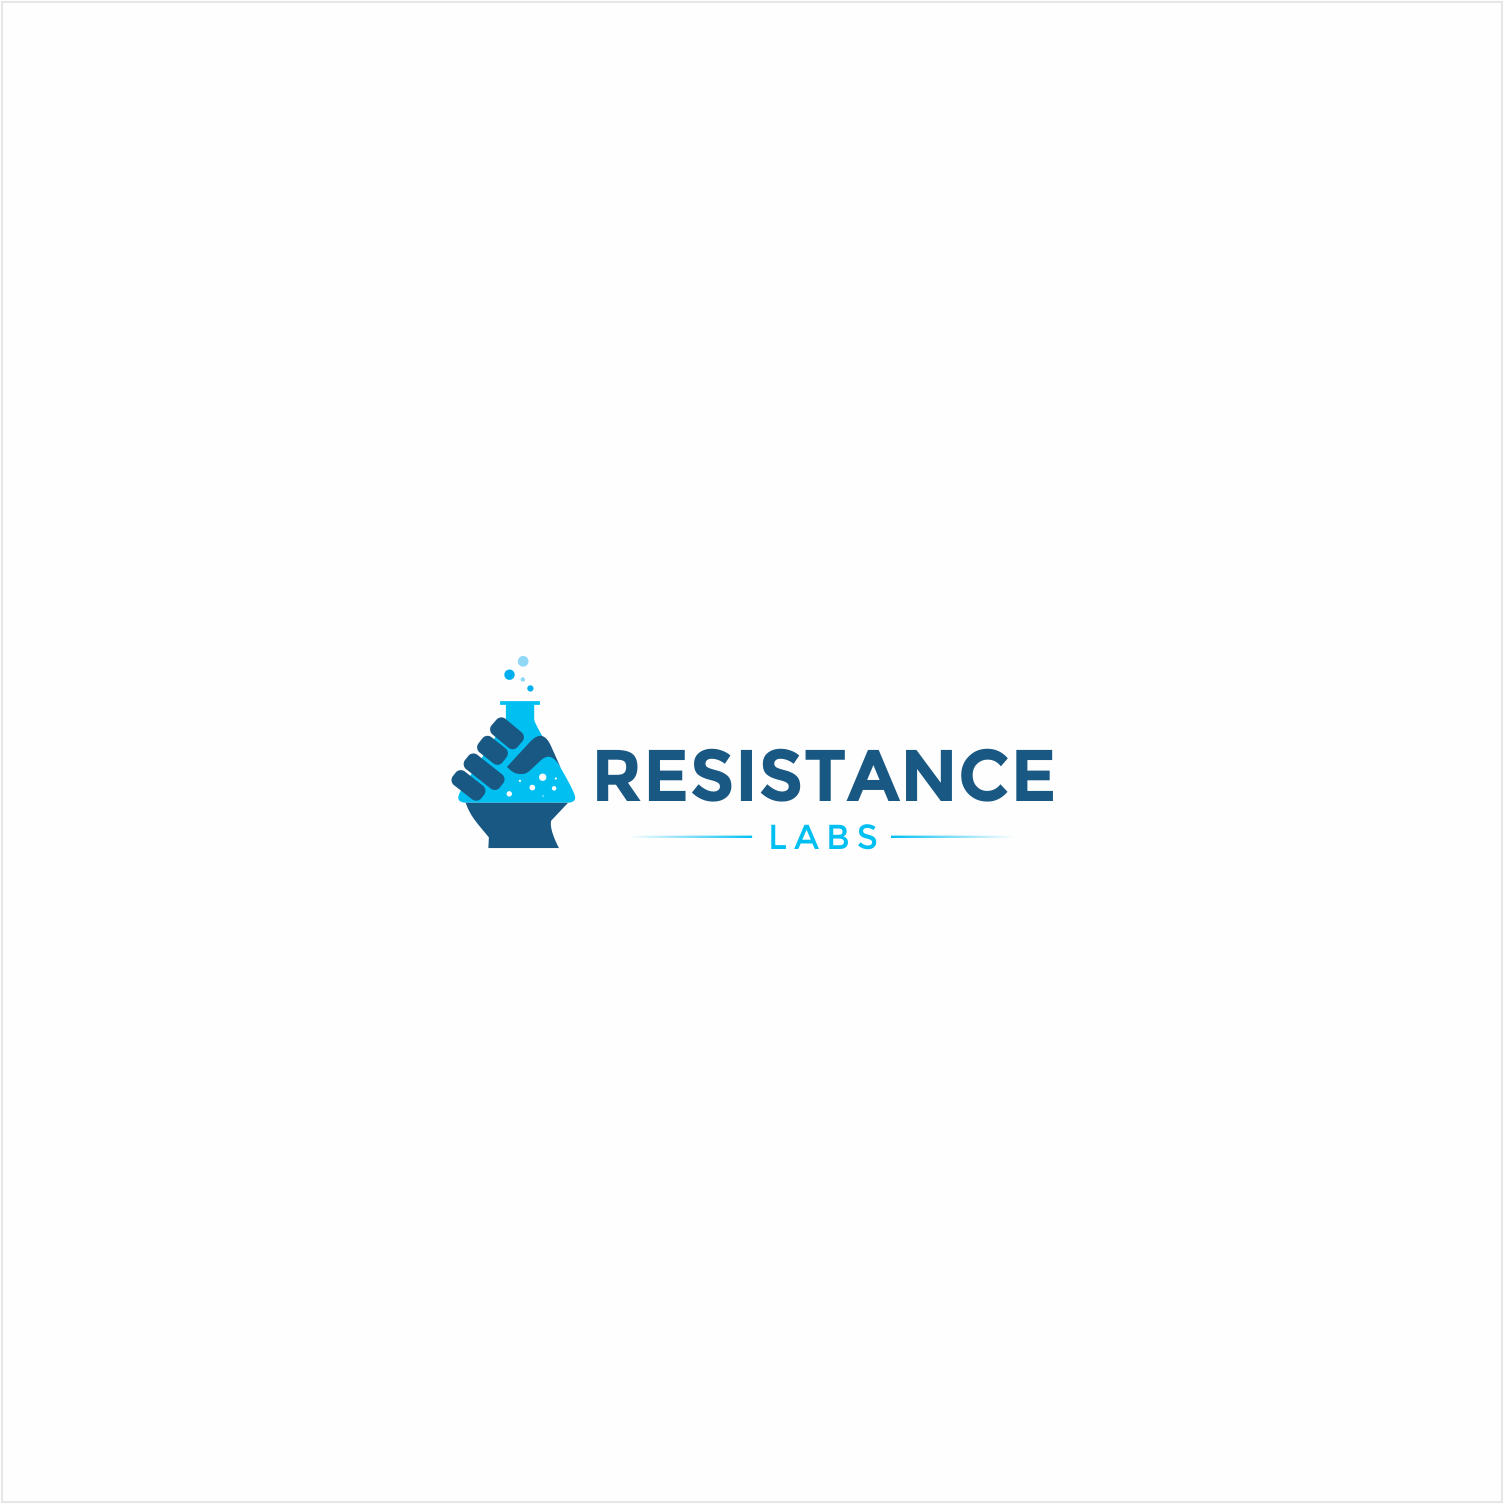 Design a logo for the new innovation lab of the resistance!